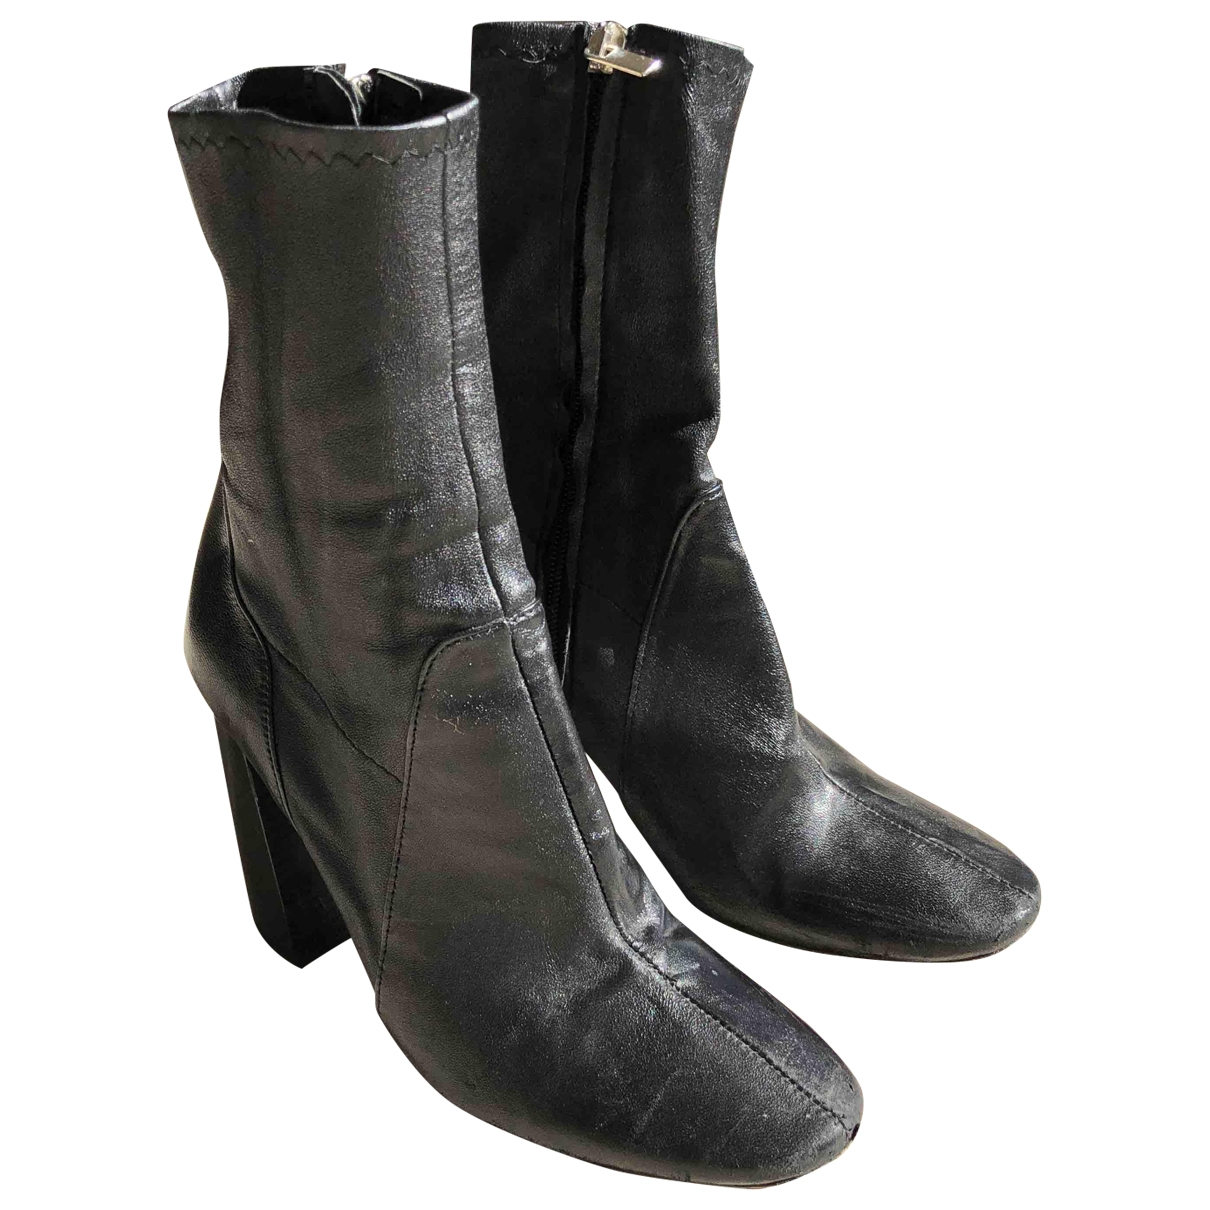 Zara \N Black Leather Ankle boots for Women 37 EU